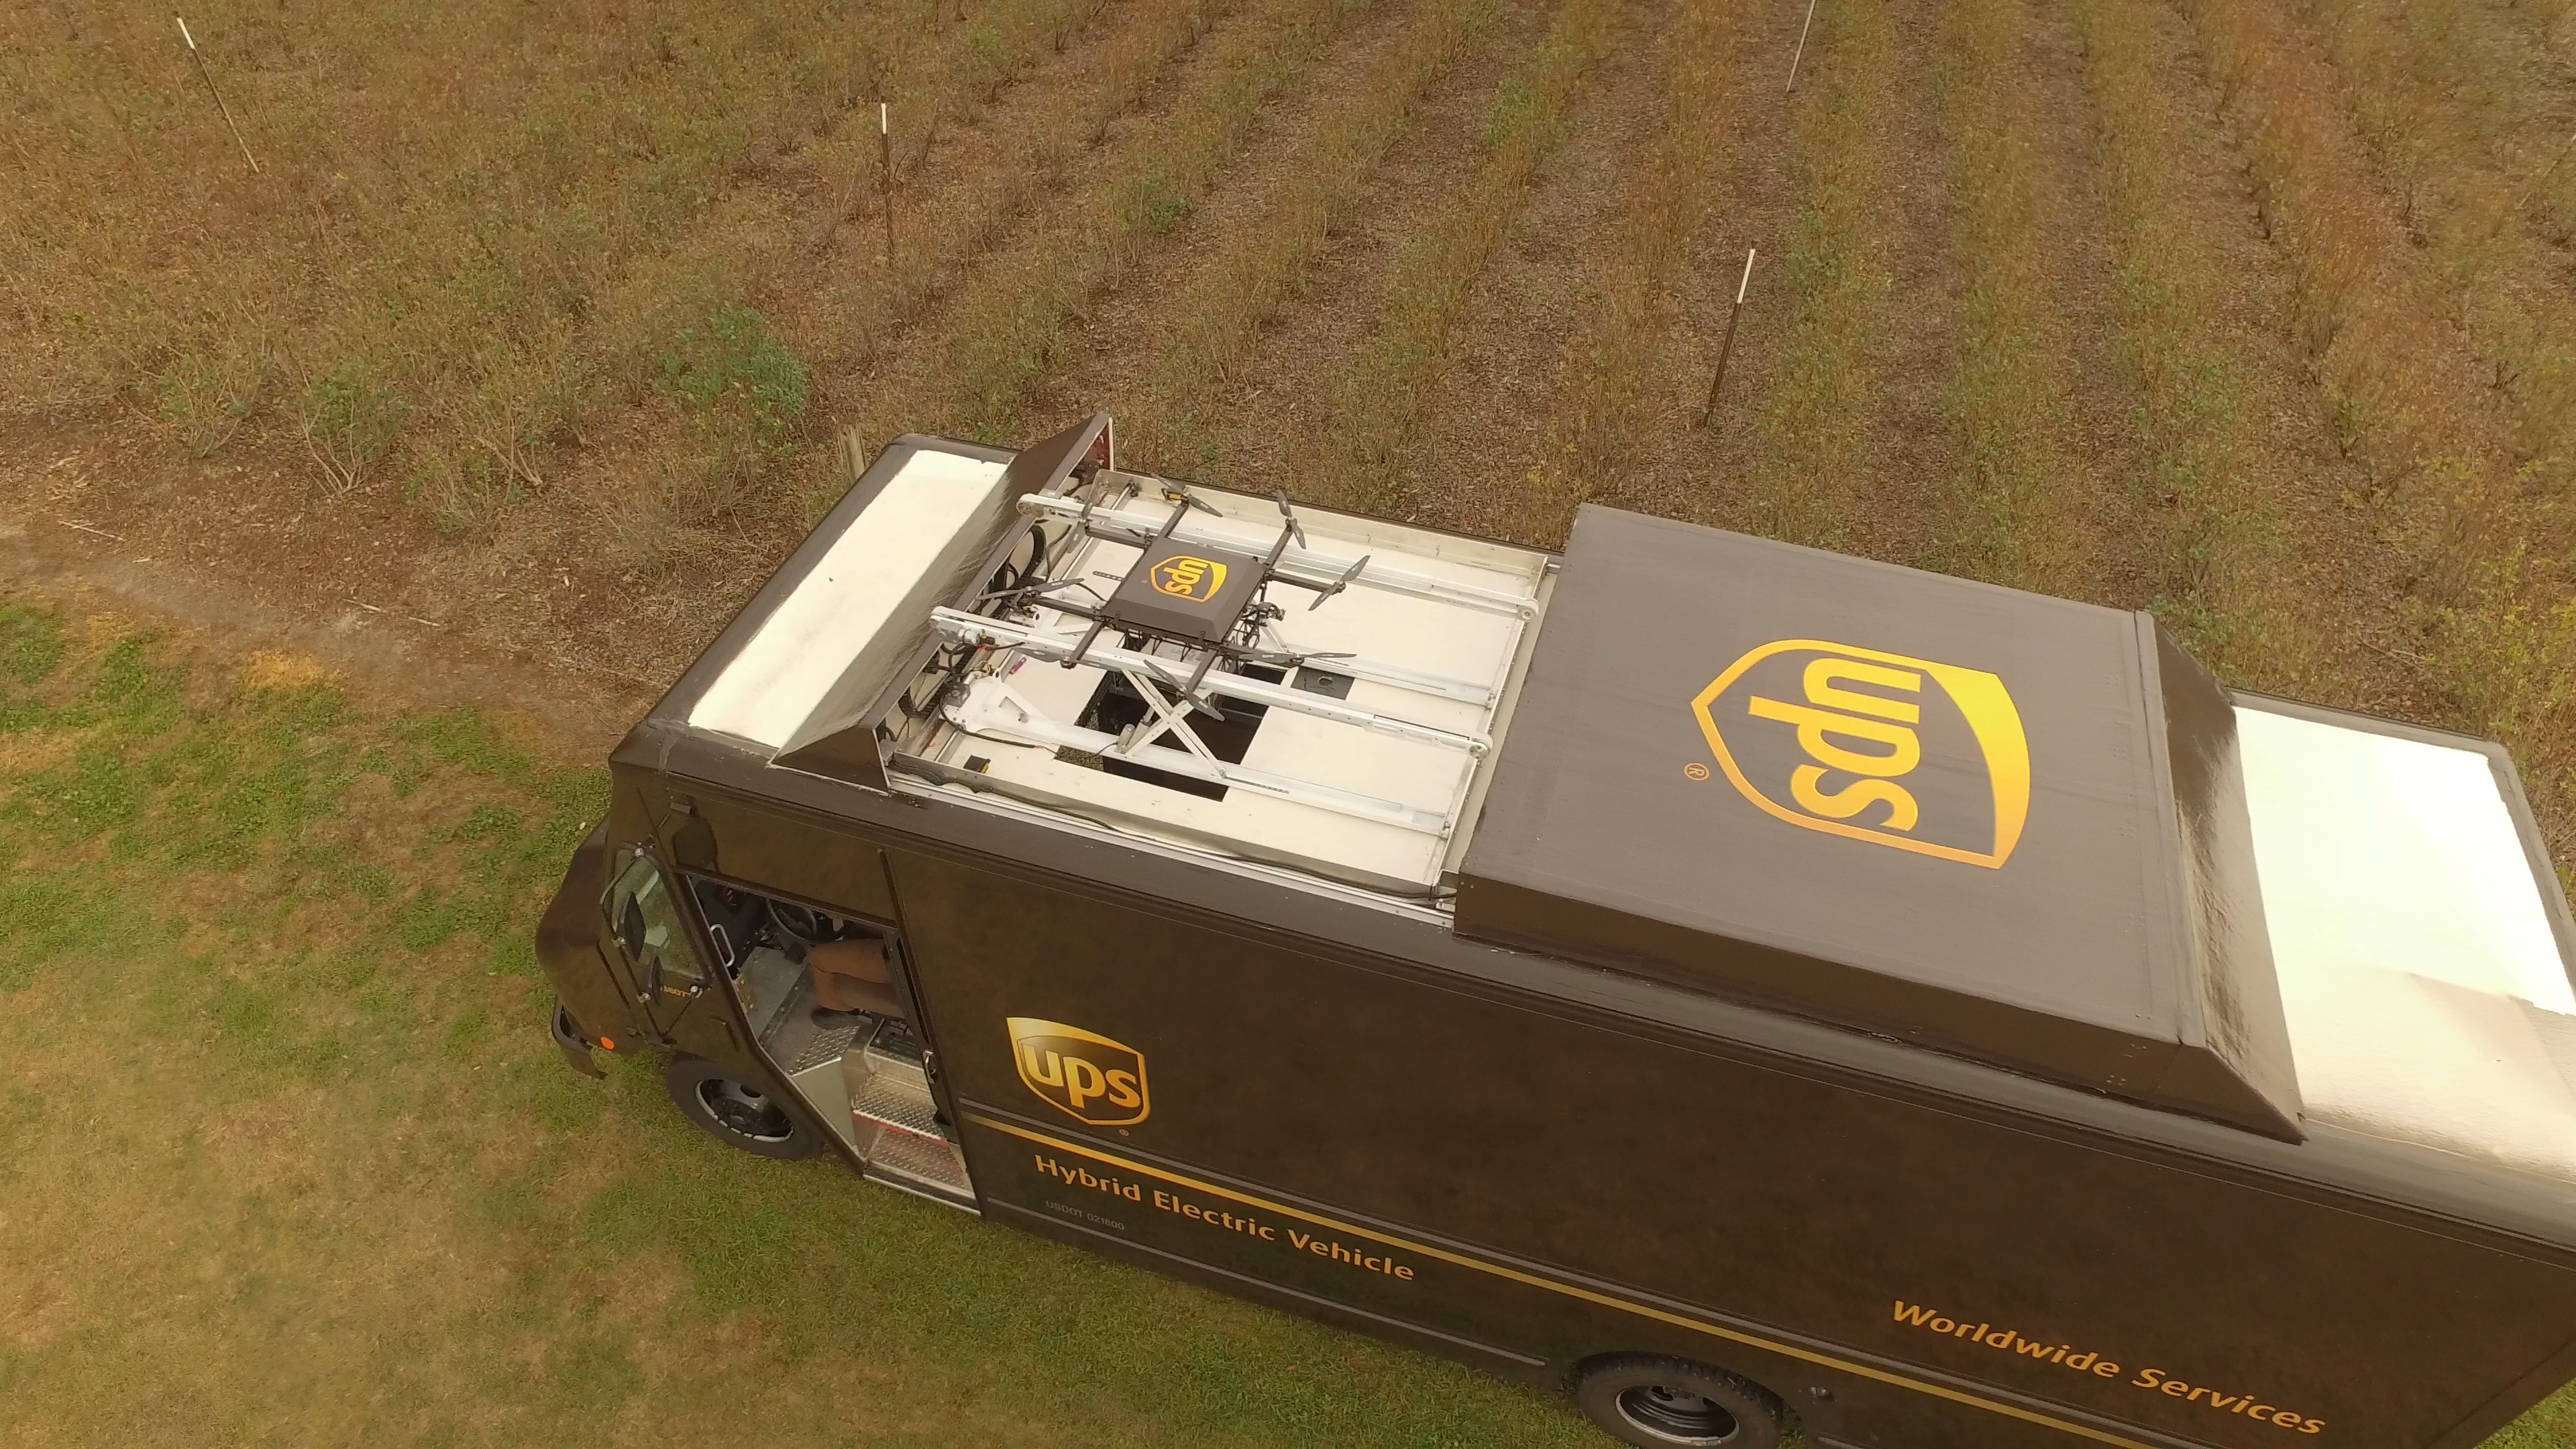 mobile0c9a66_assets_img_media_UPS20Florida20Drone202 UPS Deploys Delivery Drone from Workhorse Battery-Electric Fleet Vehicle